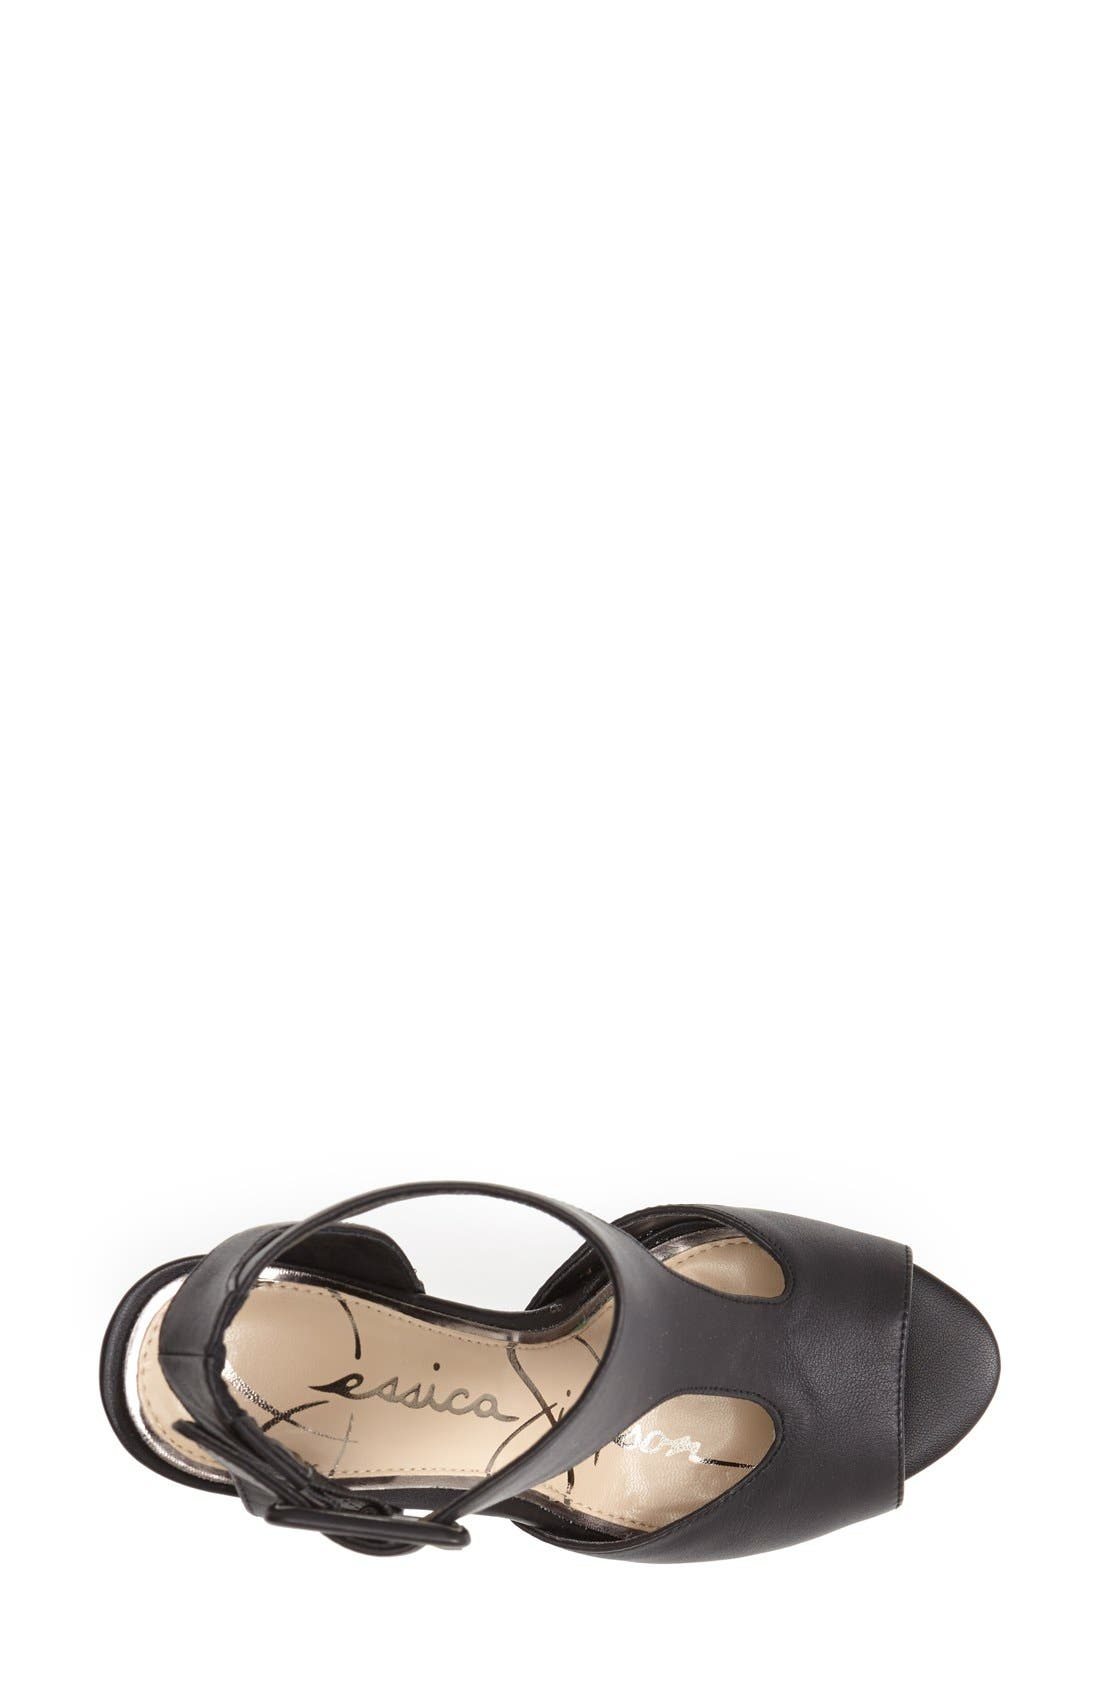 Alternate Image 2  - Jessica Simpson 'Dewy' Cutout Sandal (Women)